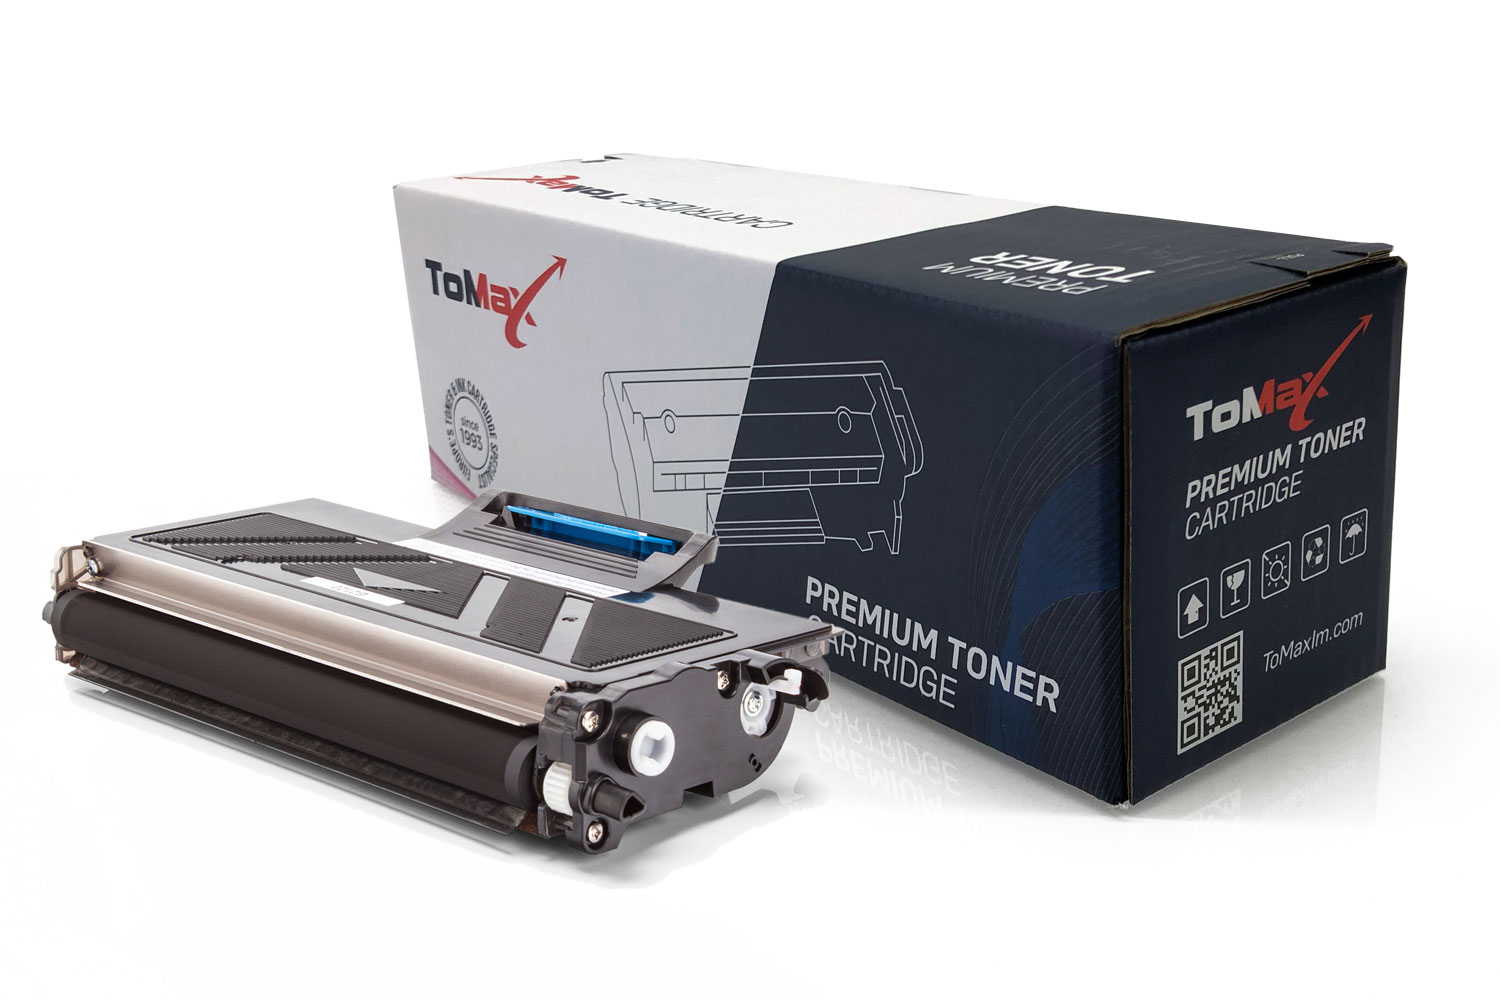 ToMax Premium Toner Cartridge replaces Brother TN-2010 Black